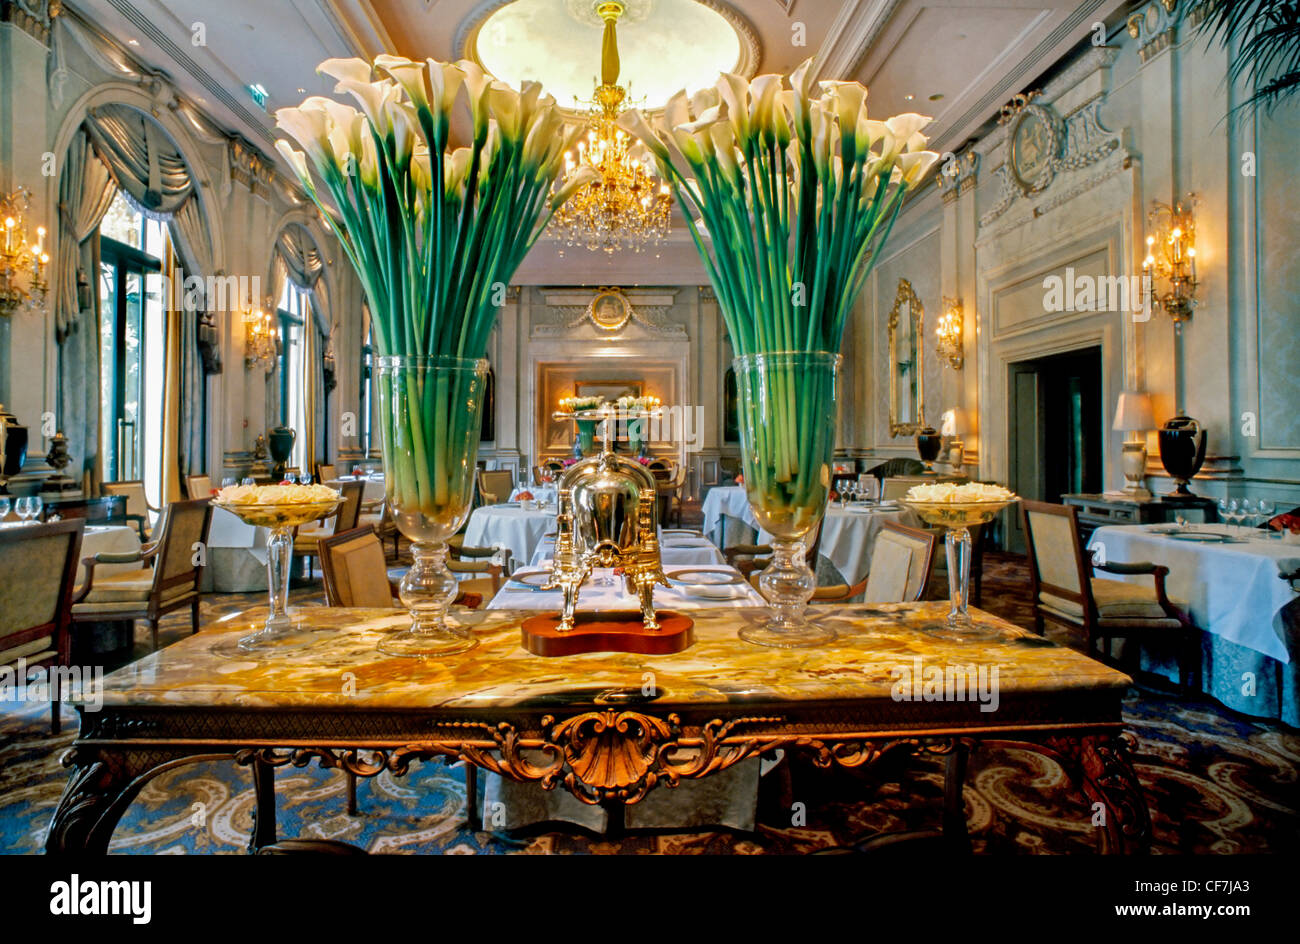 France paris fancy french restaurant interior decor le for Art and decoration france